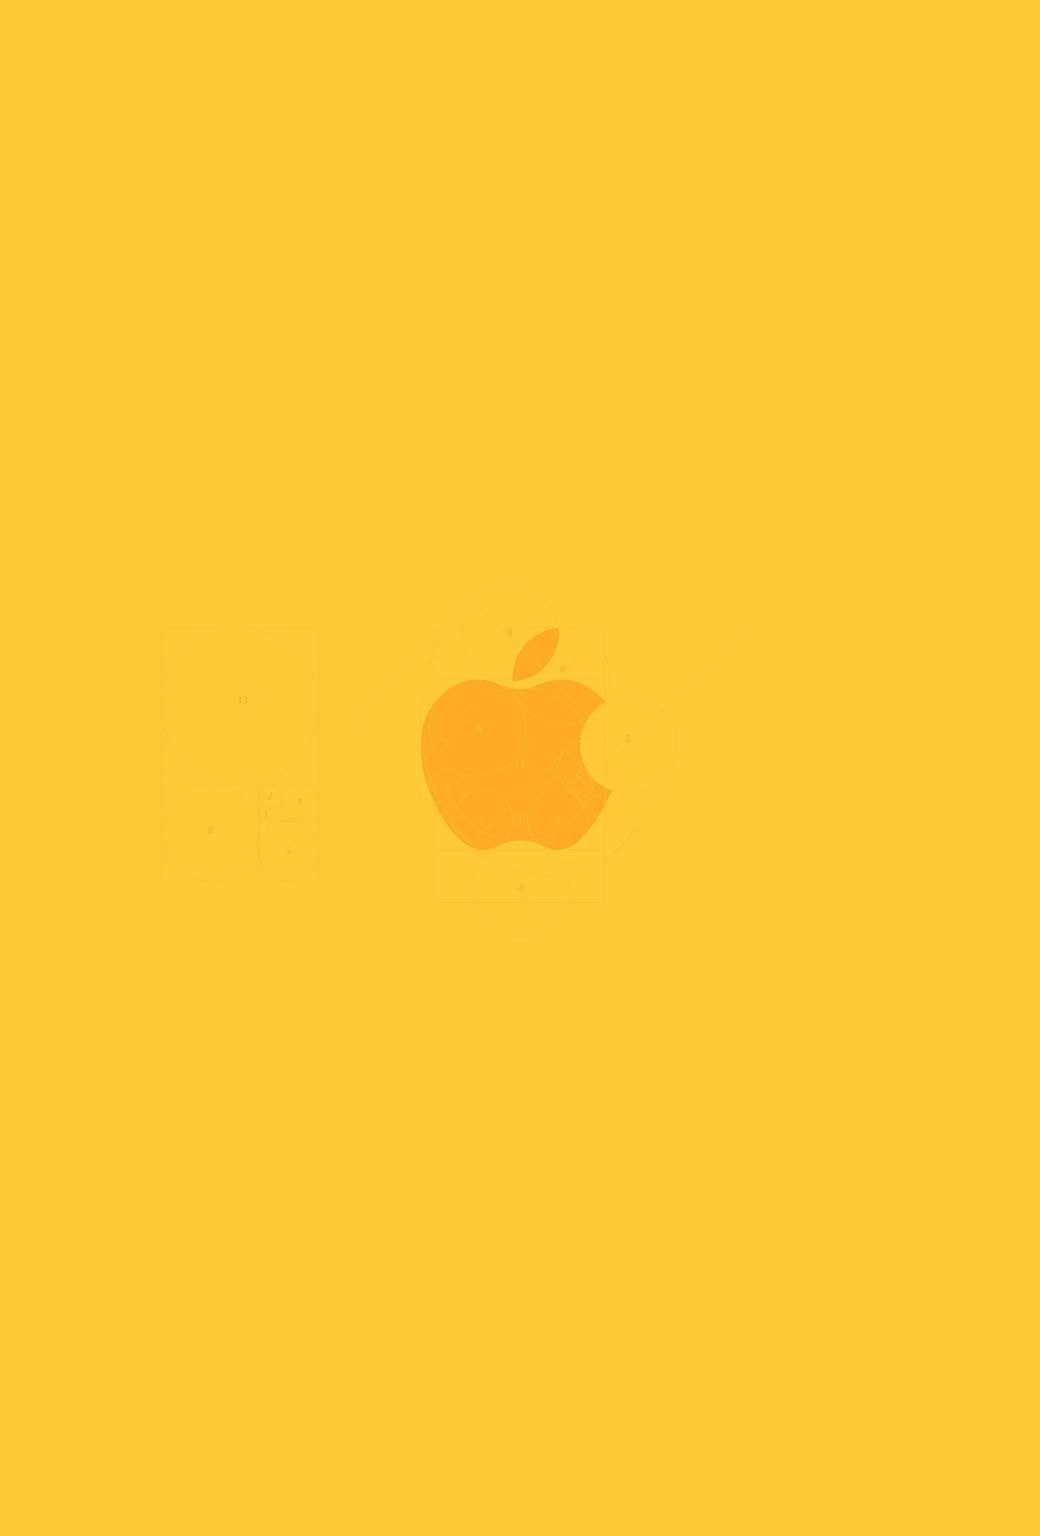 yellow wallpaper for iphone Bing images Apple Love